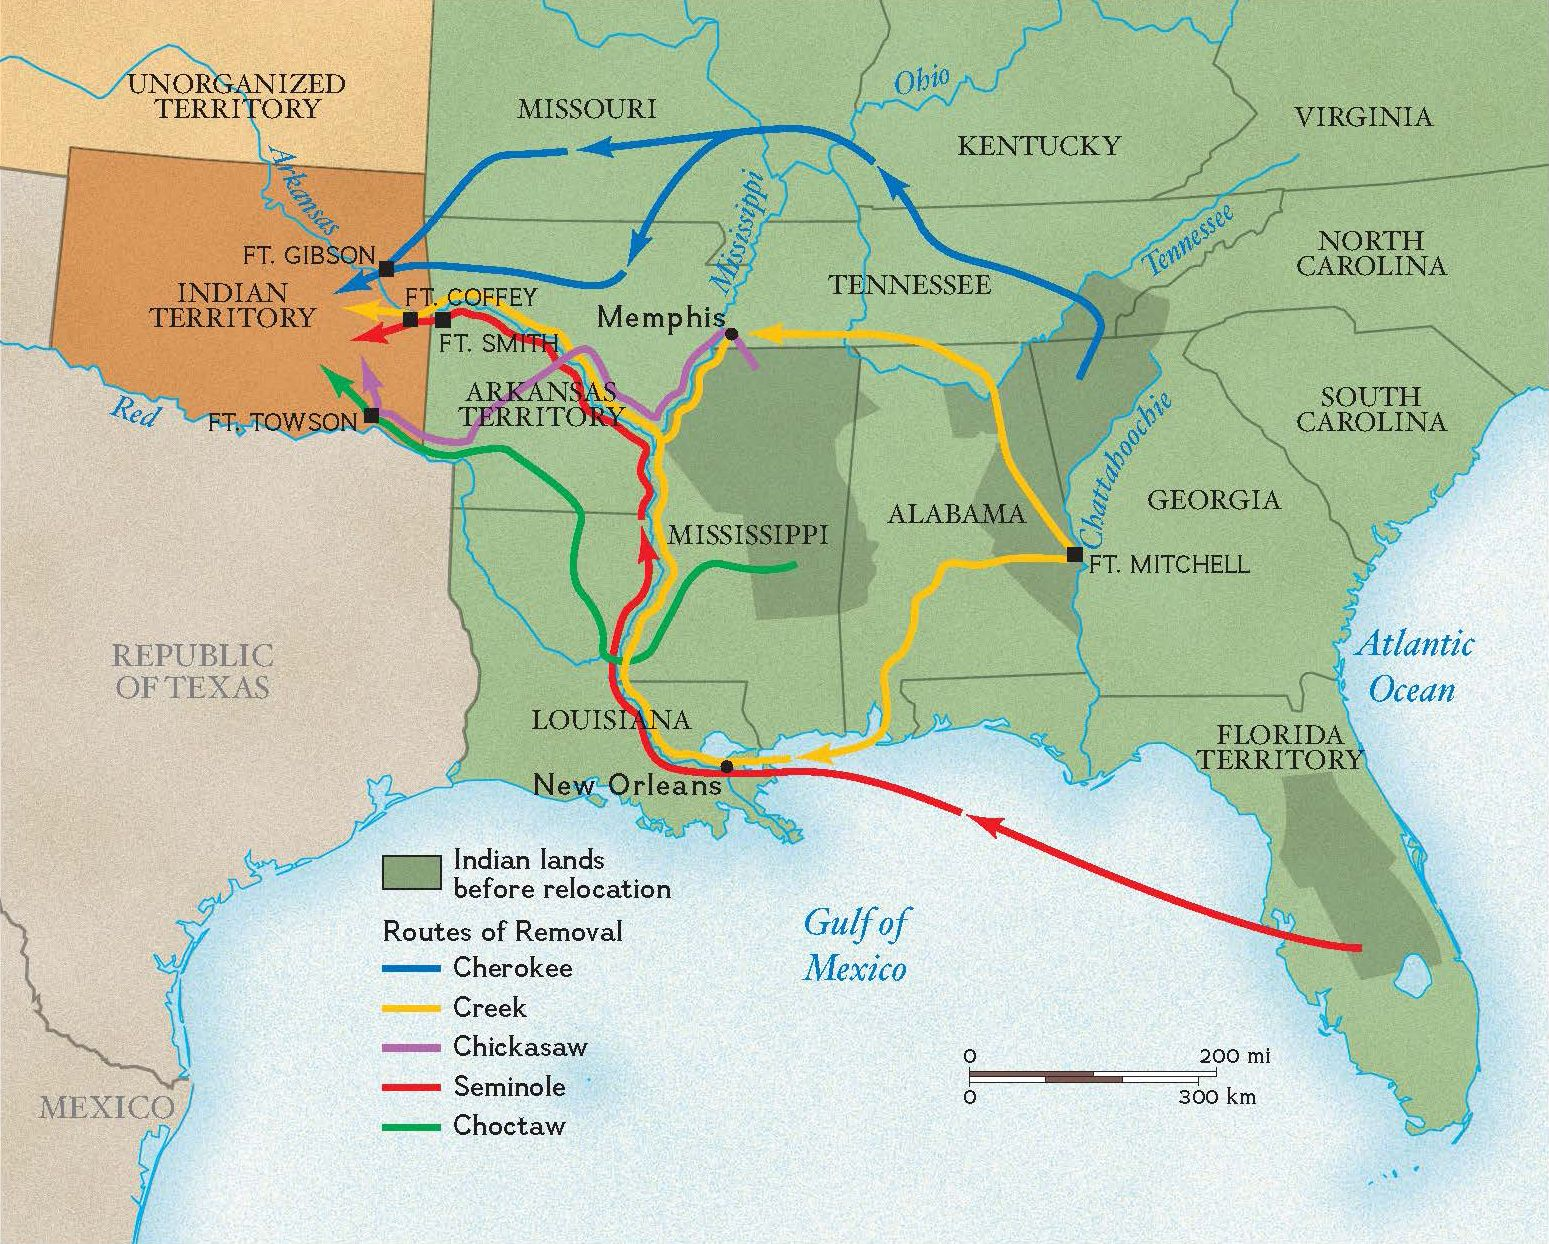 Indian Removal Act Of 1830 Andrew Jackson besides Who Was President Andrew Jackson History Photos Trump Civil War 2017 5 also Cherokee Removal also Life Afterward together with Trail Of Tears. on choctaw indian removal act 1830